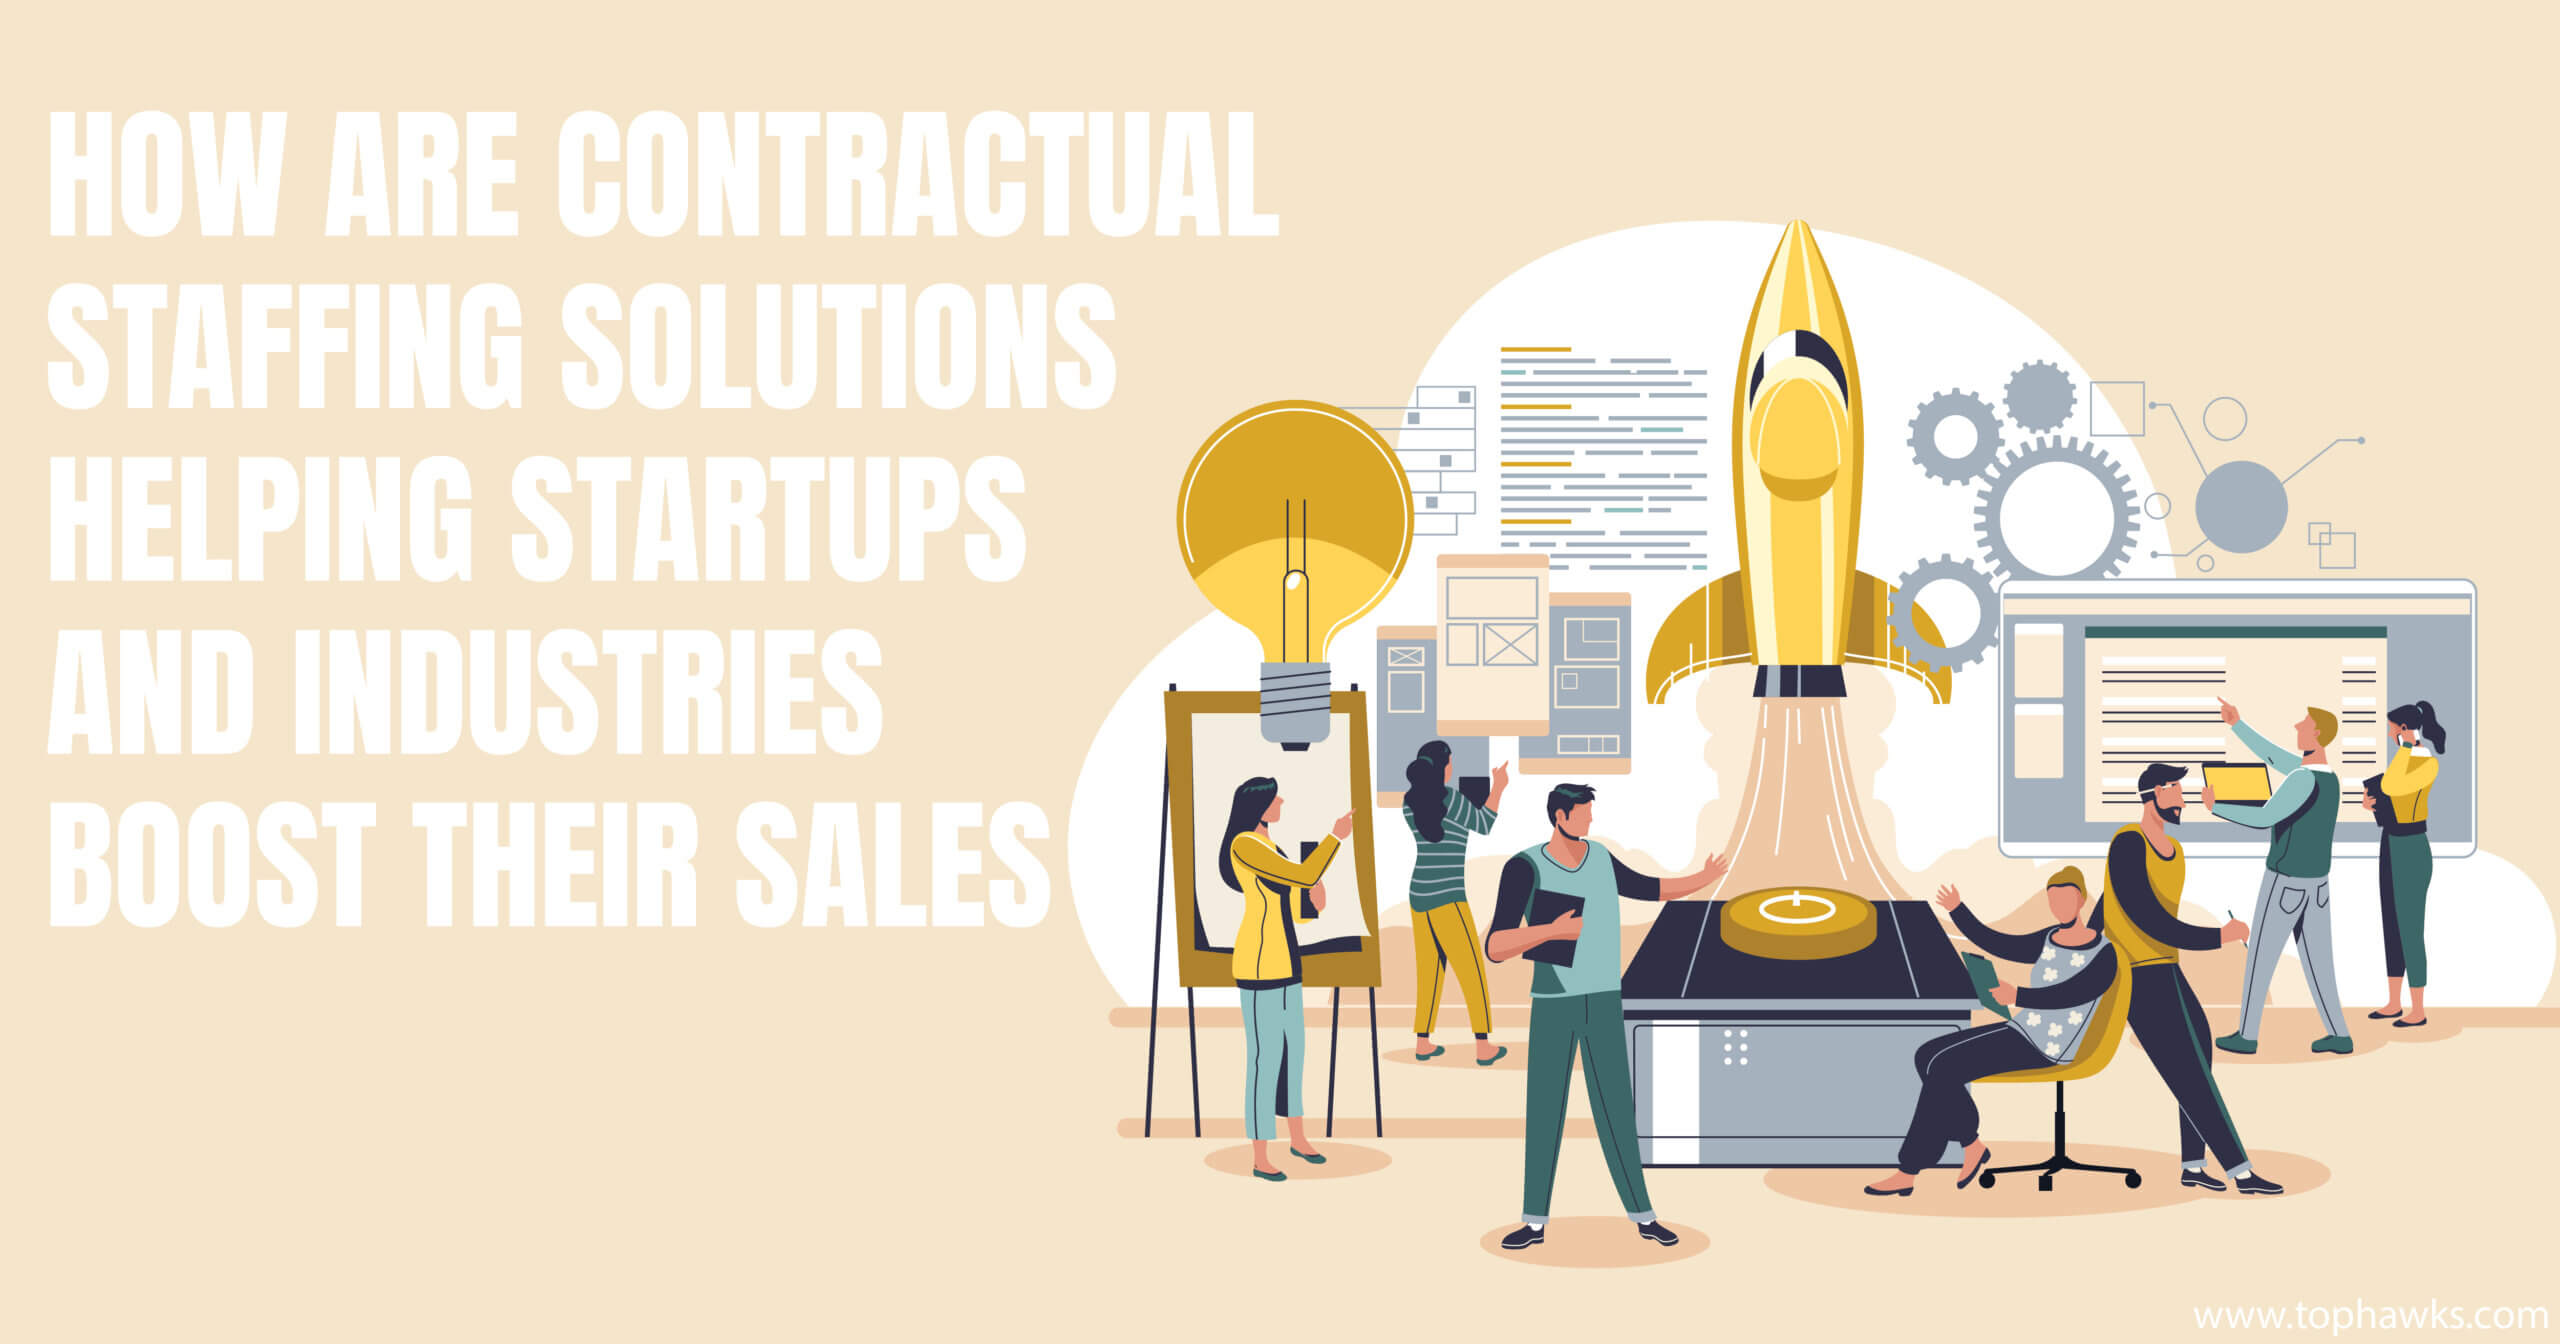 How are contractual staffing solutions helping startups and industries boost their sales?